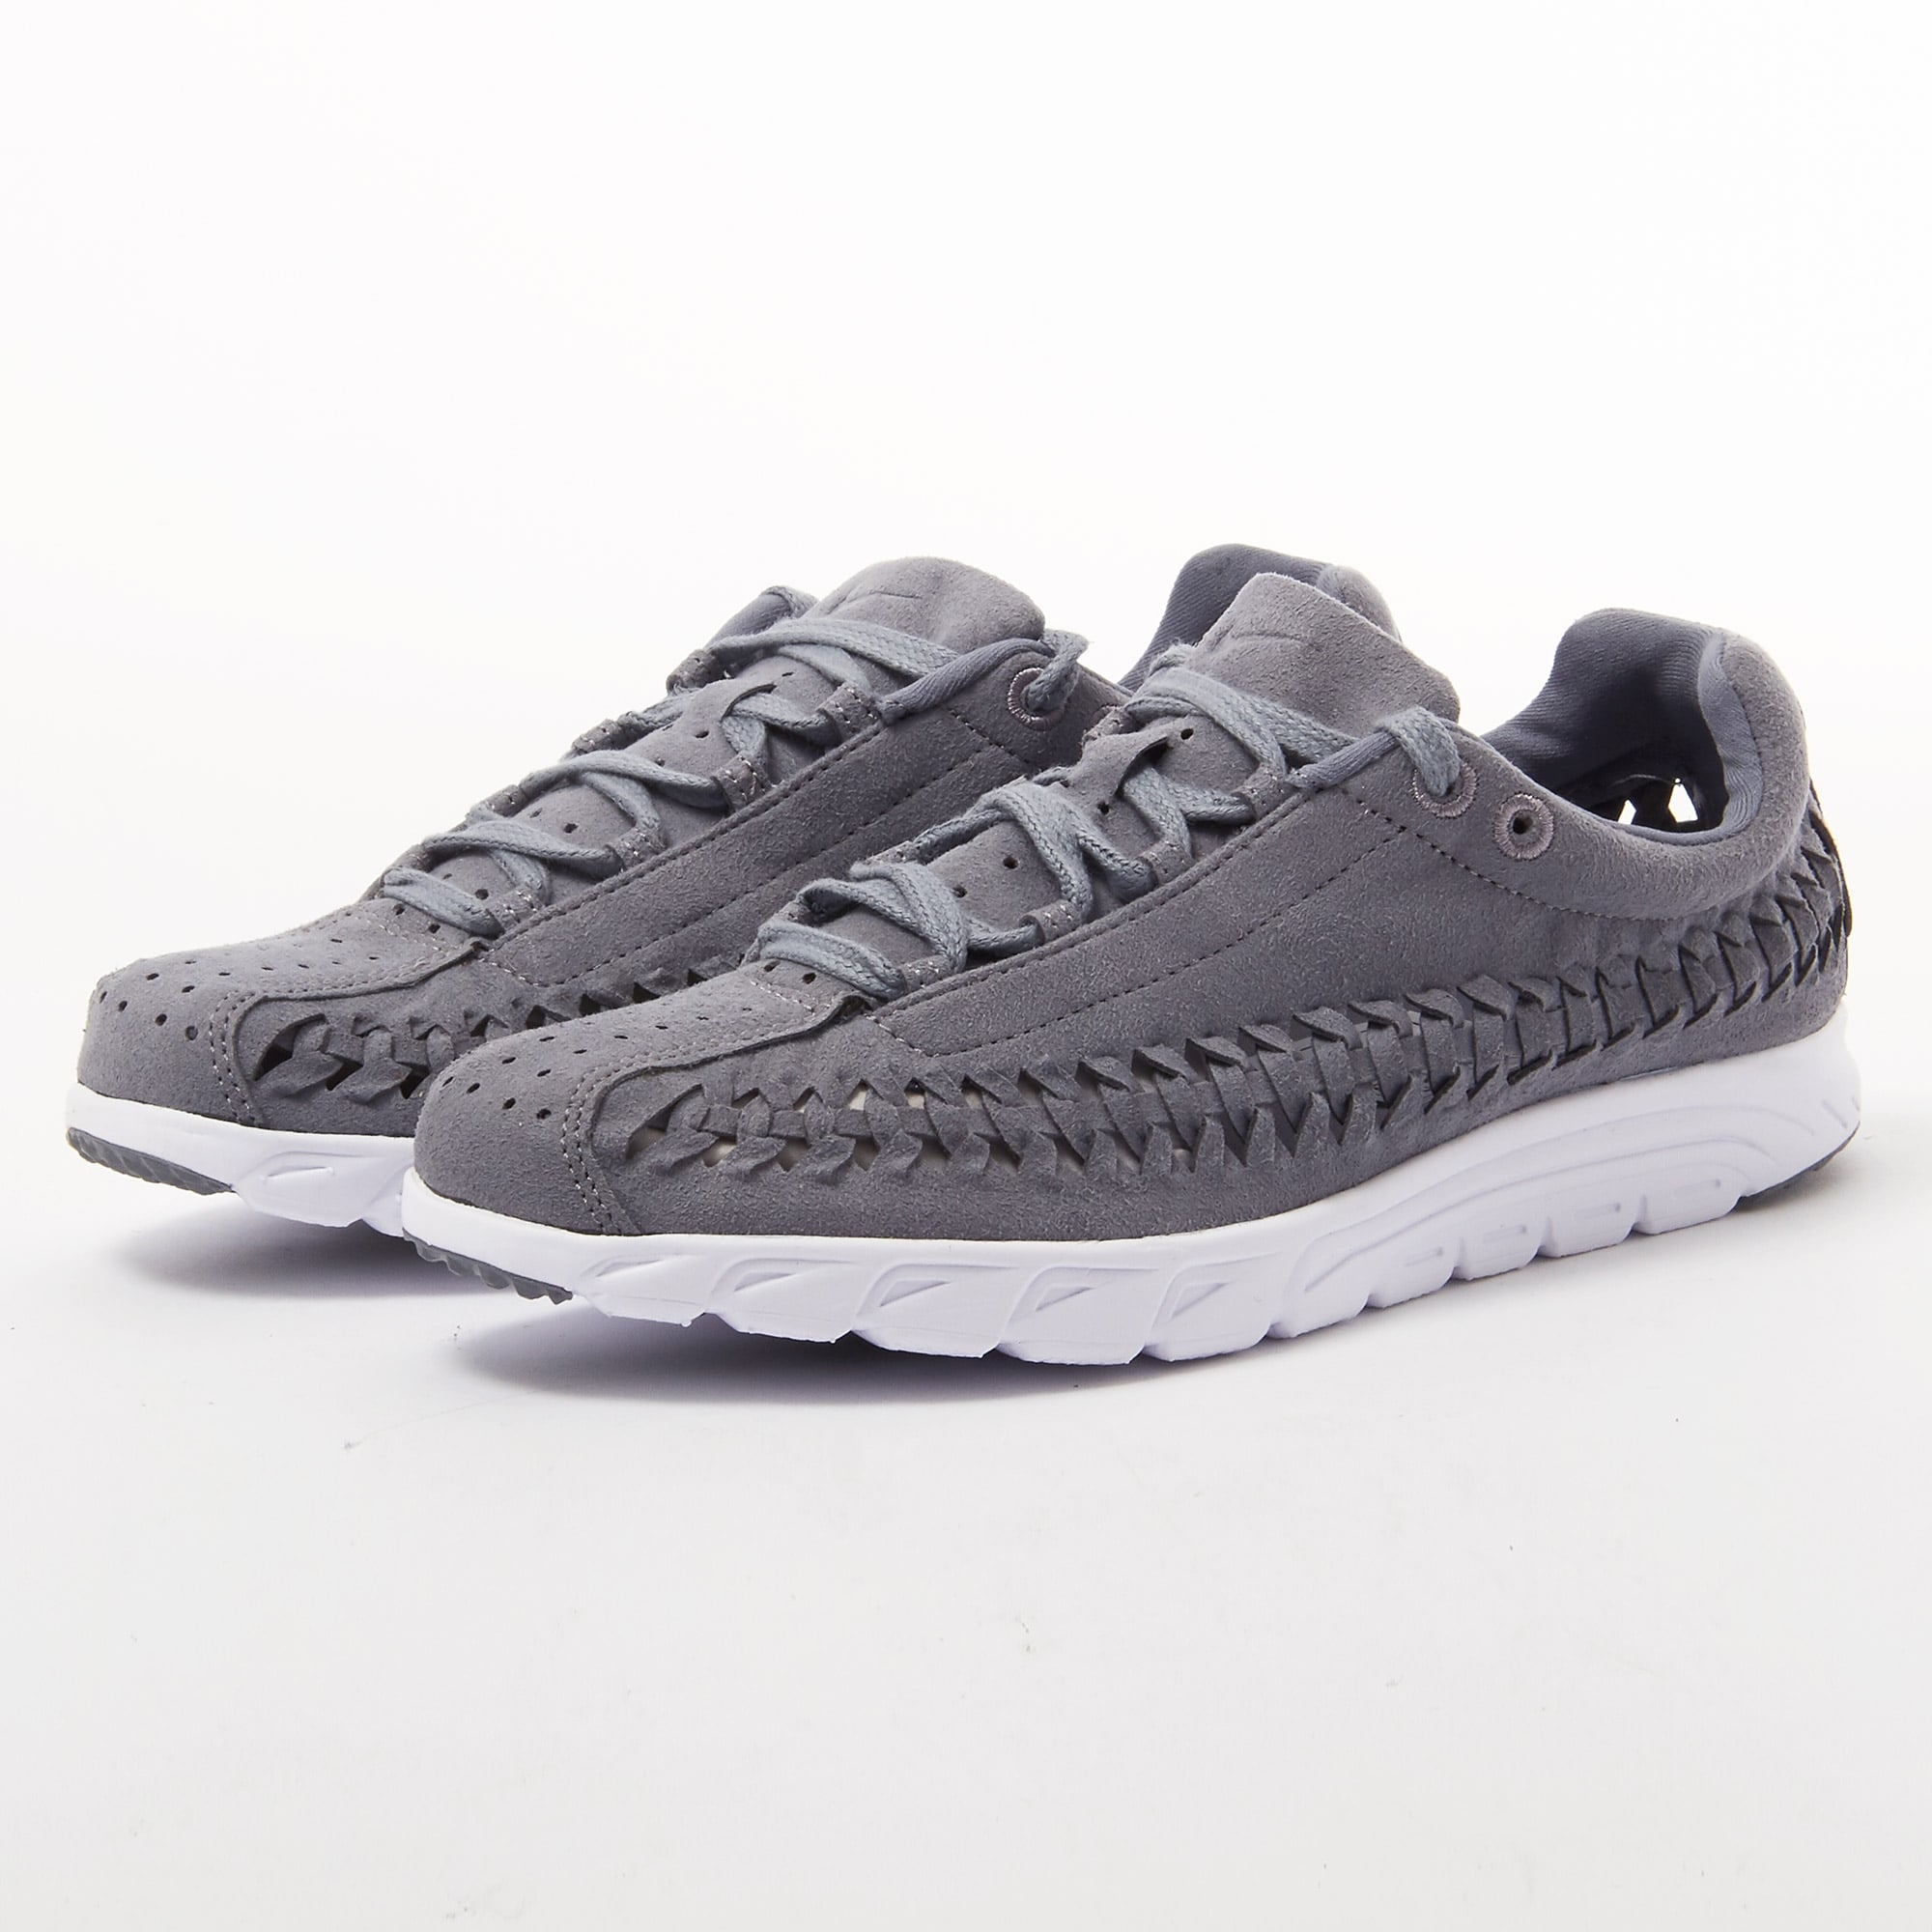 NIKE MAYFLY WOVEN COOL GREY WHITE BLACK 833132-004